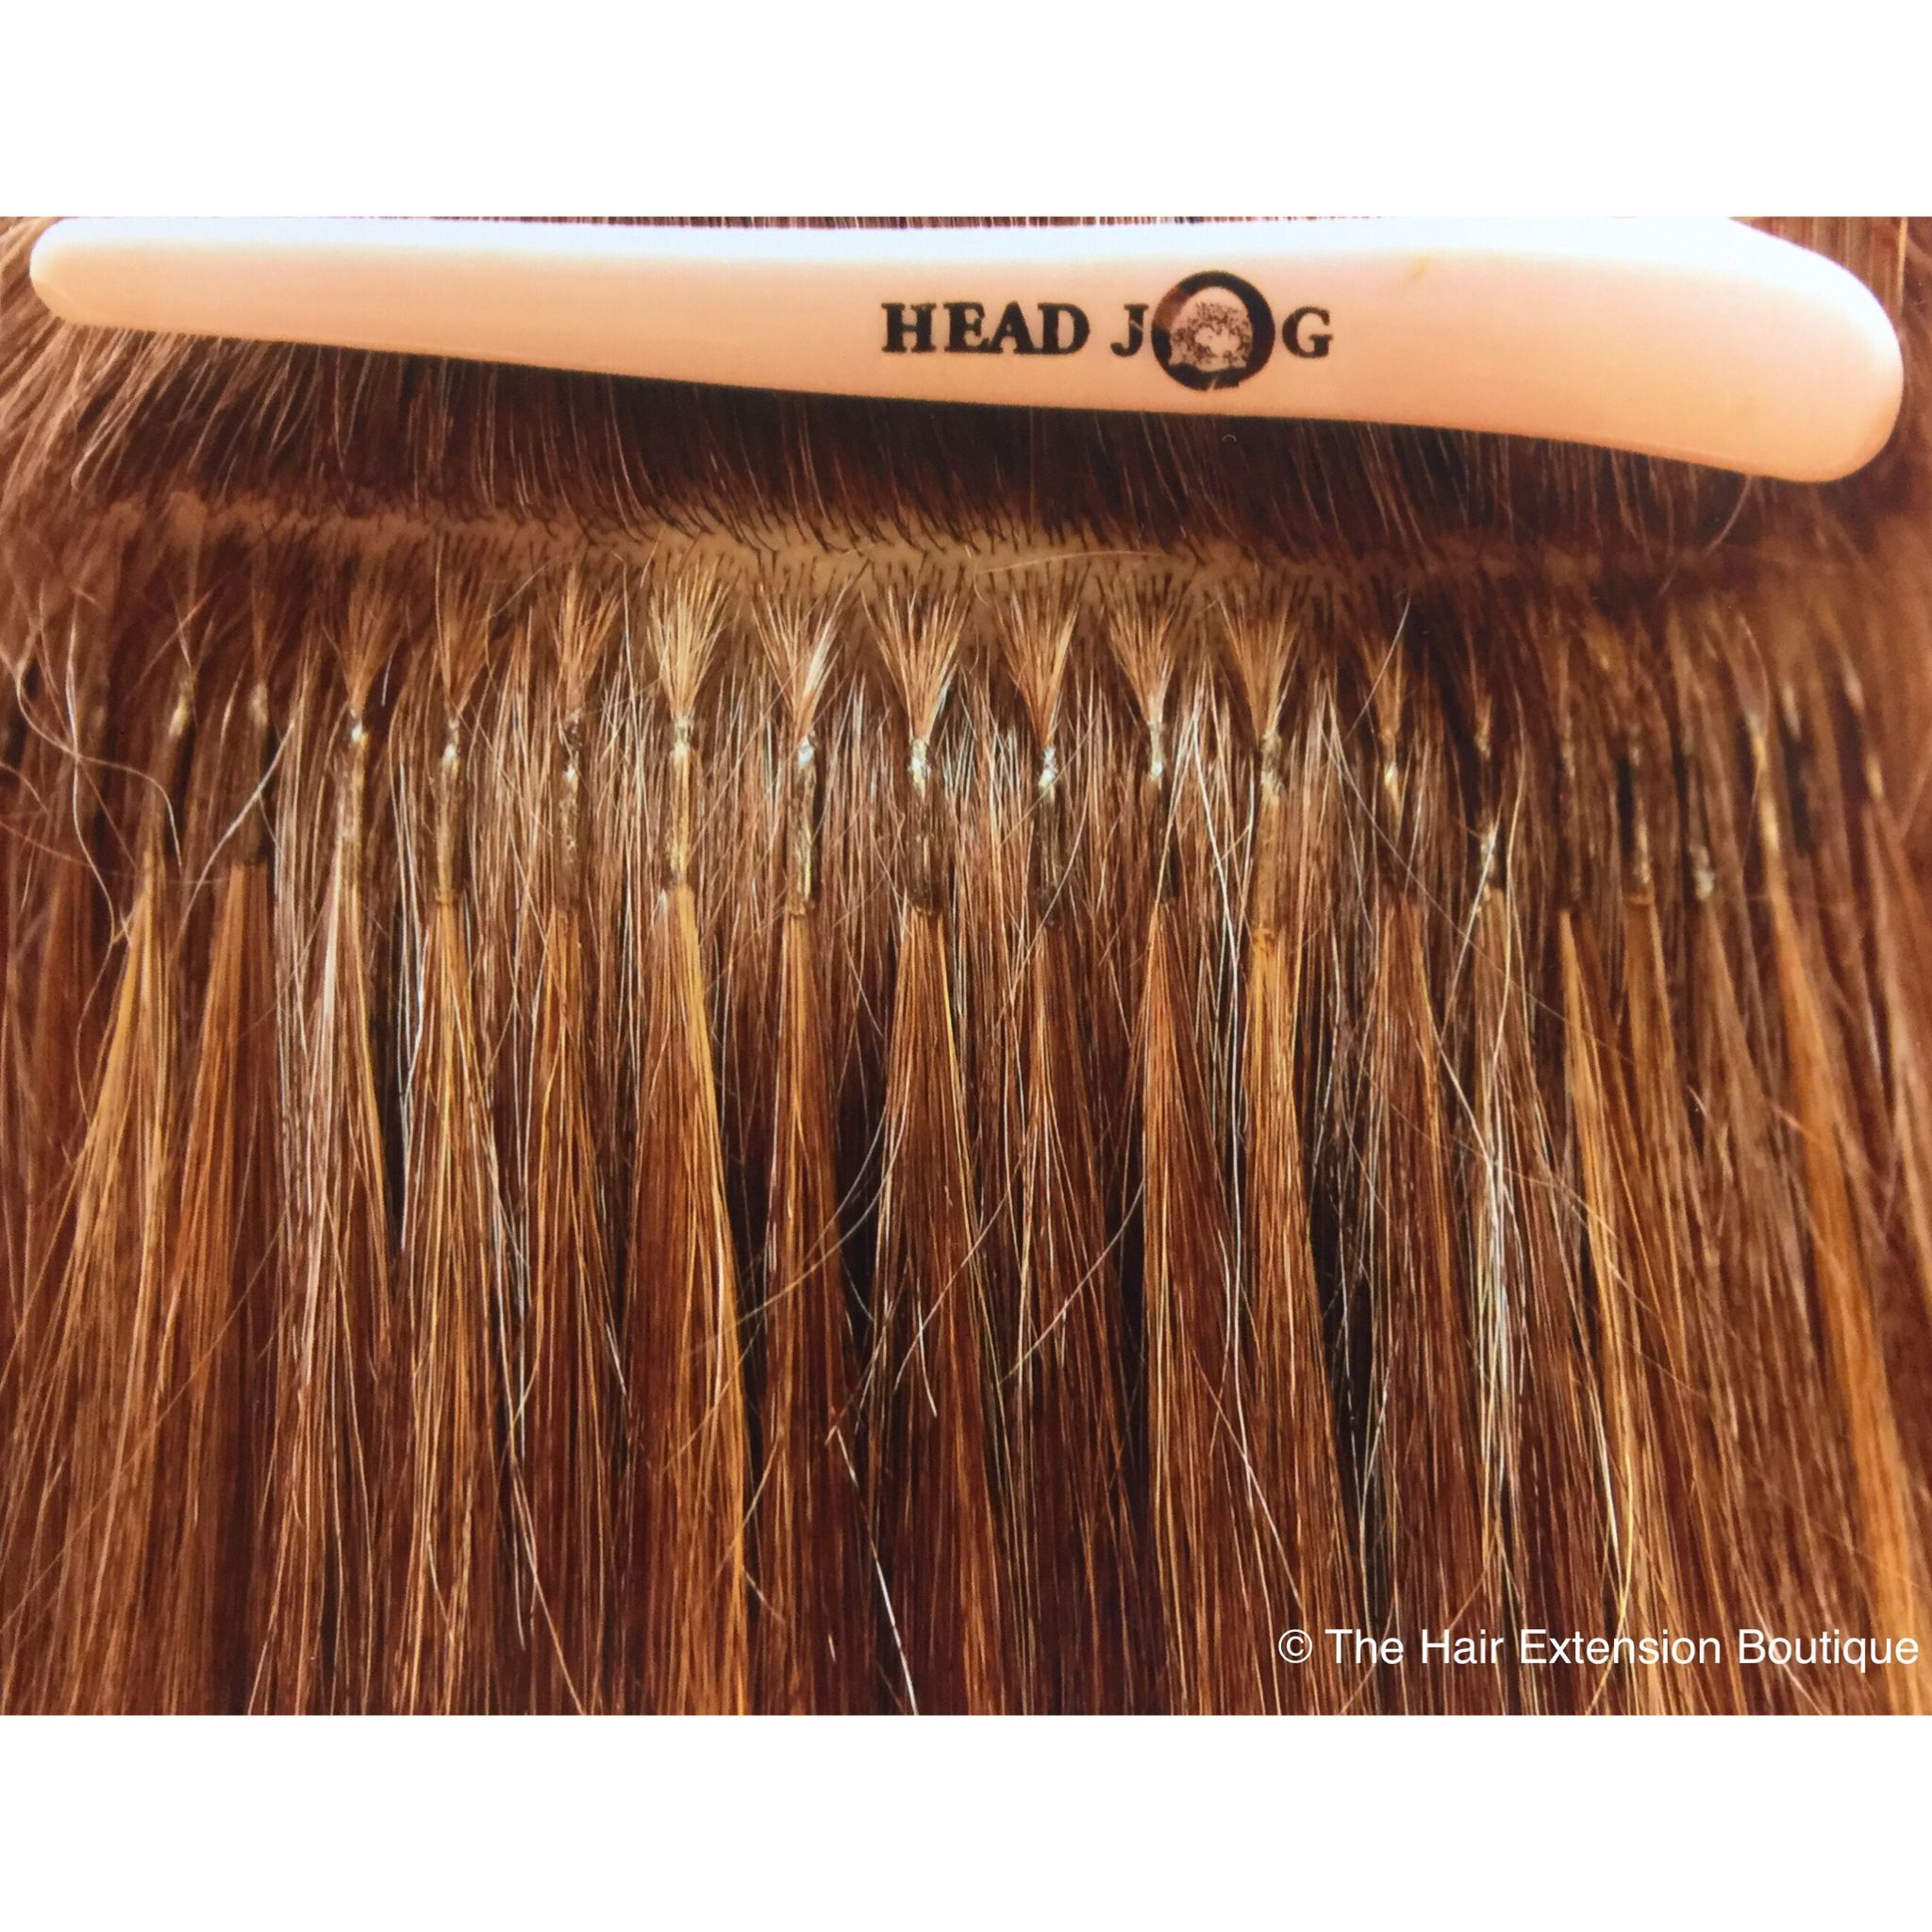 5f5ce859e0ae056dbe6e22c24380ed3f - How Much Is It To Get Hair Extensions Done Professionally